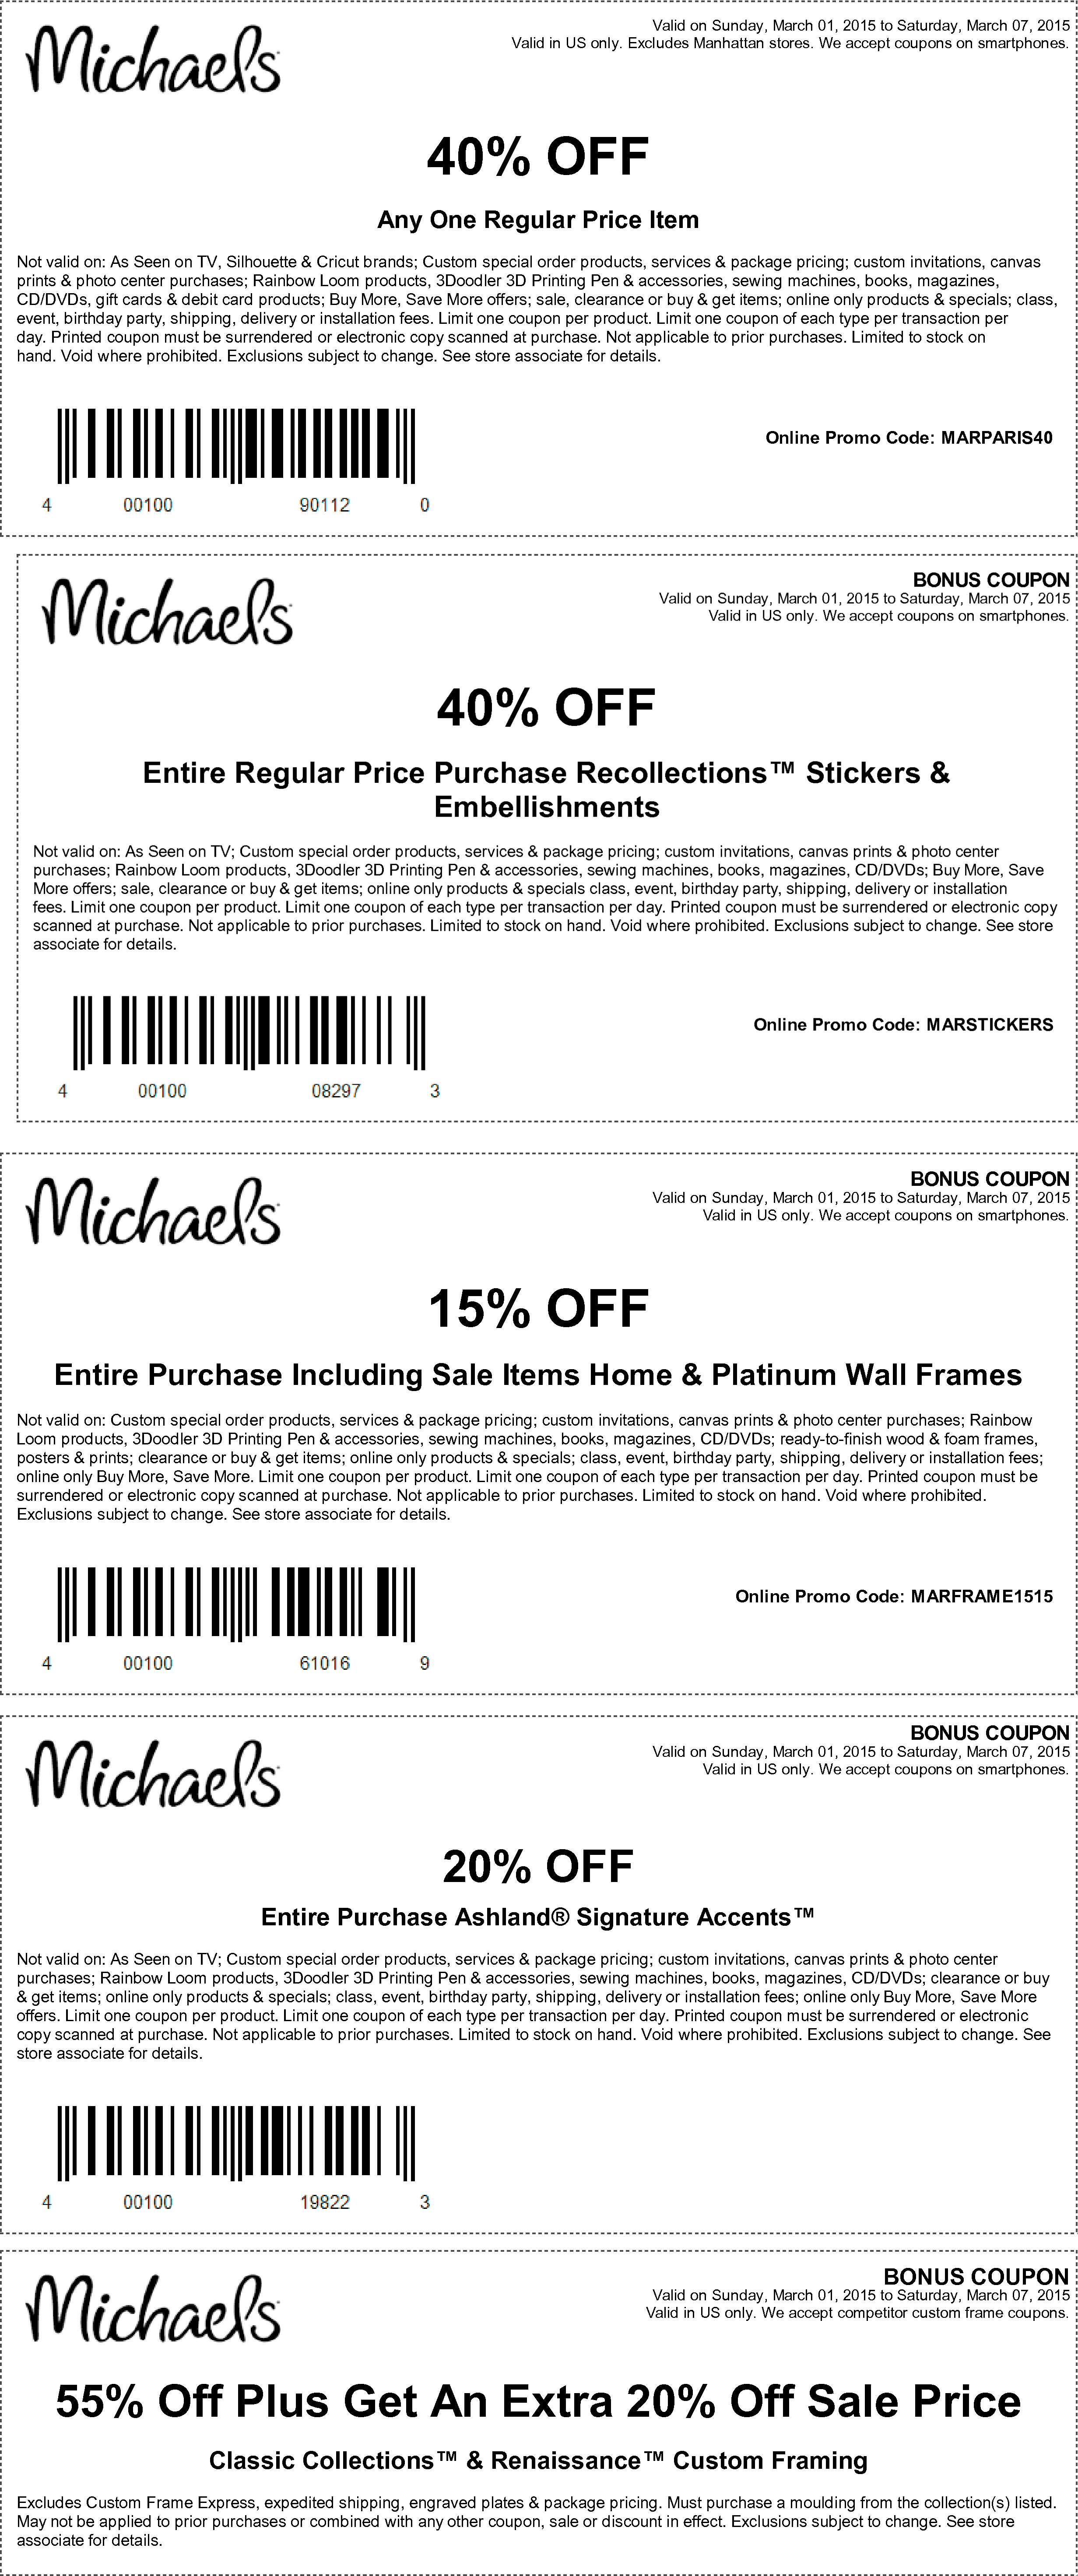 Michaels Coupon August 2018 40% off a single item & more at Michaels, or online via promo code MARPARIS40